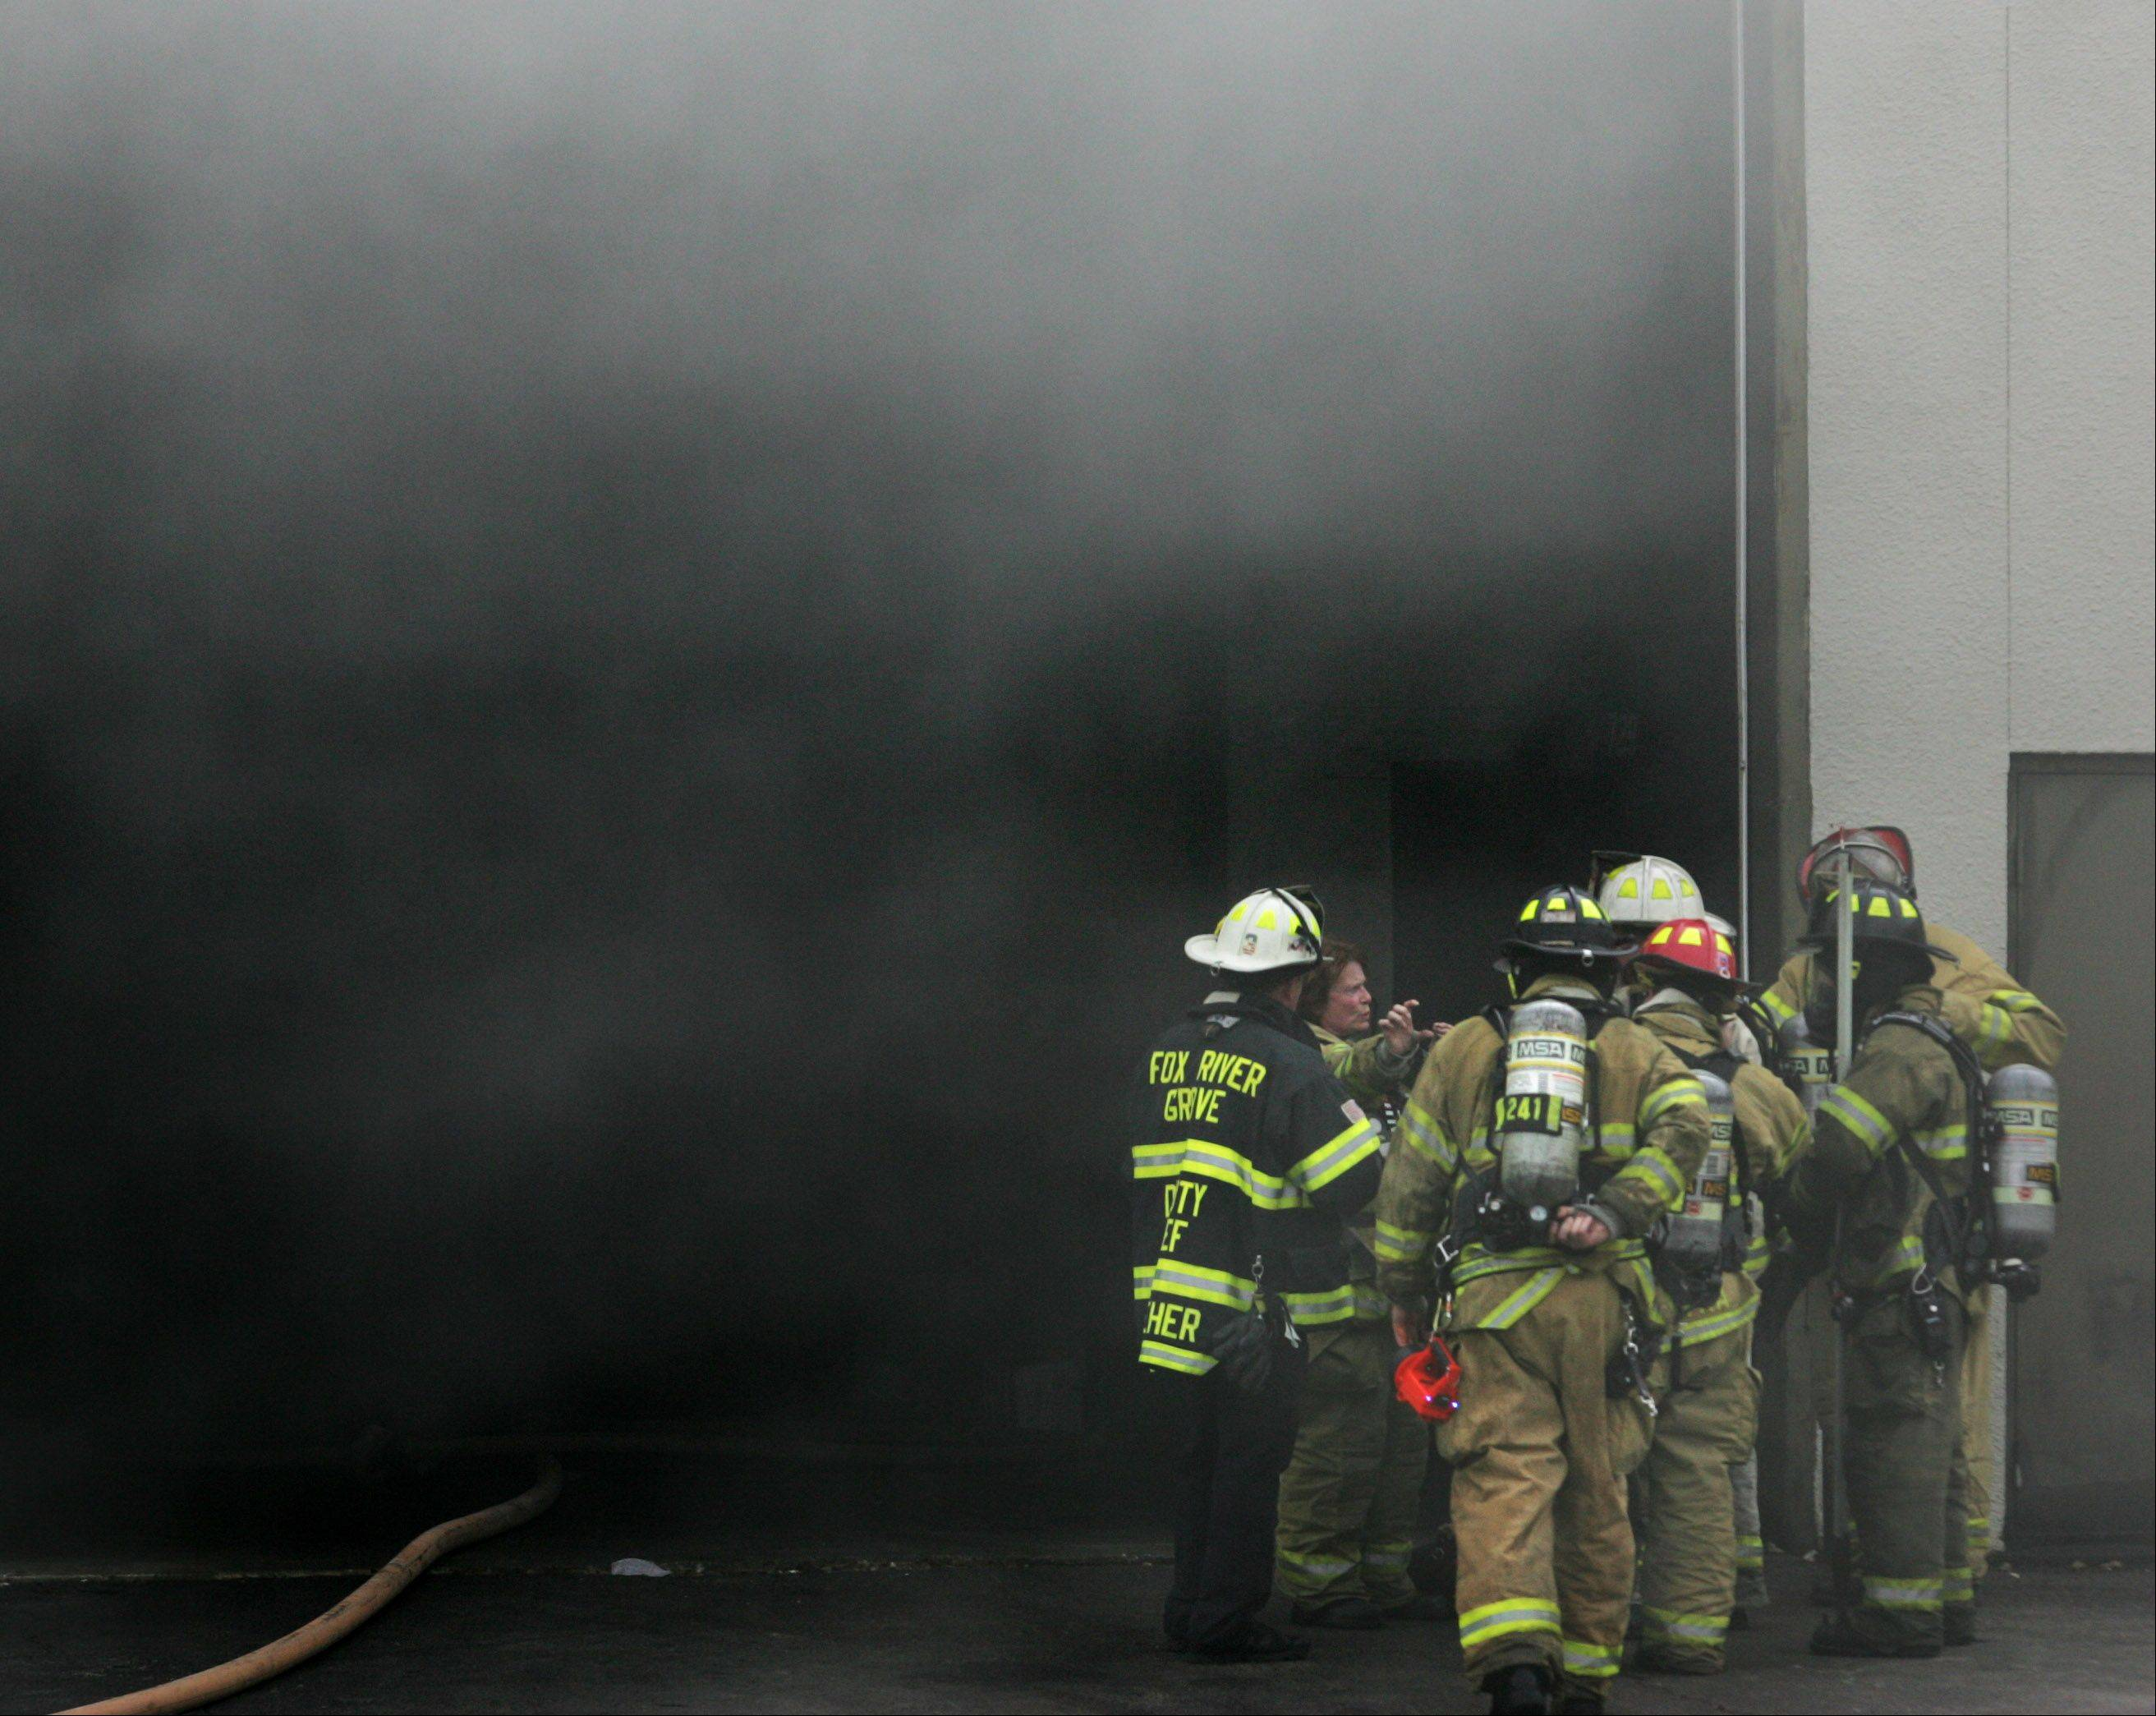 Firefighters from Cary and Fox River Grove Fire Protection District coordinate their efforts while at the scene of a fire at the Tru-Cut factory in Cary Monday afternoon.